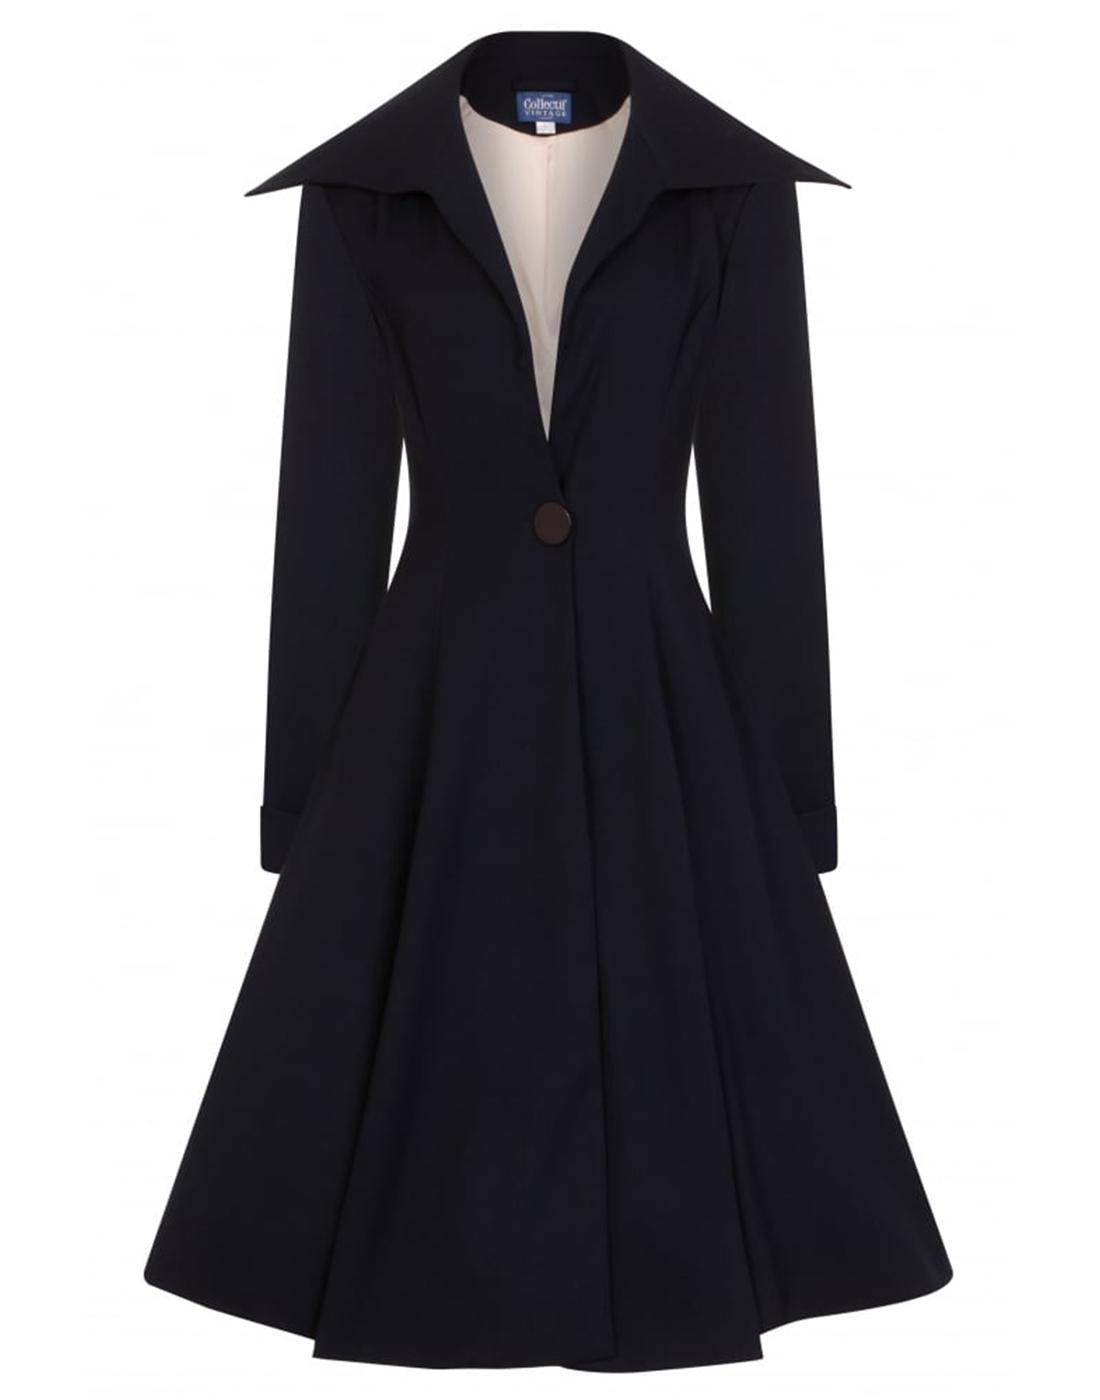 Bobbie COLLECTIF 1950's Vintage Swing Coat in Navy